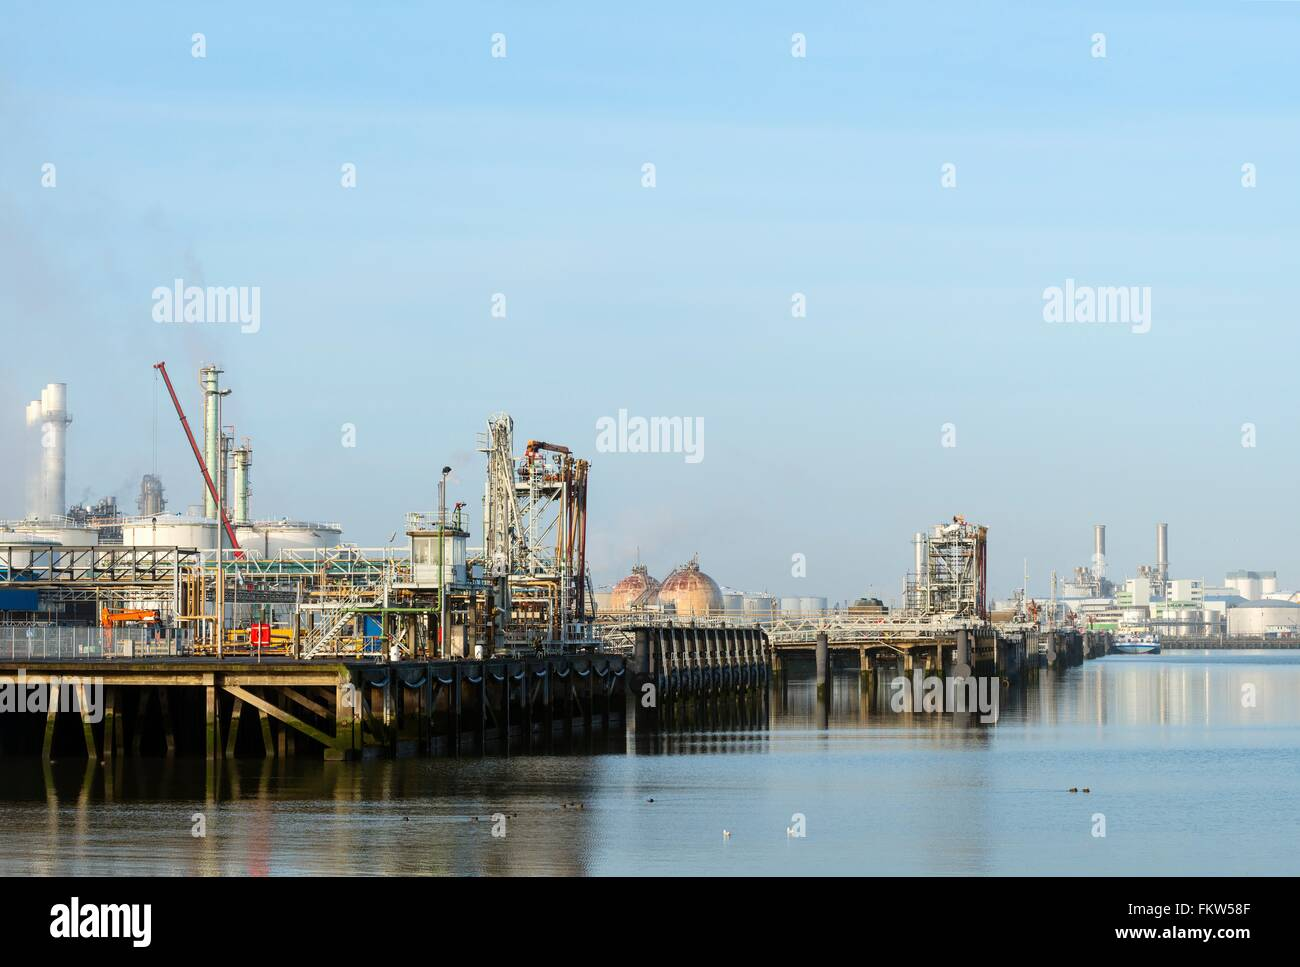 Harbour with oil terminal at refinery, Rotterdam, Zuid-Holland, The Netherlands Stock Photo